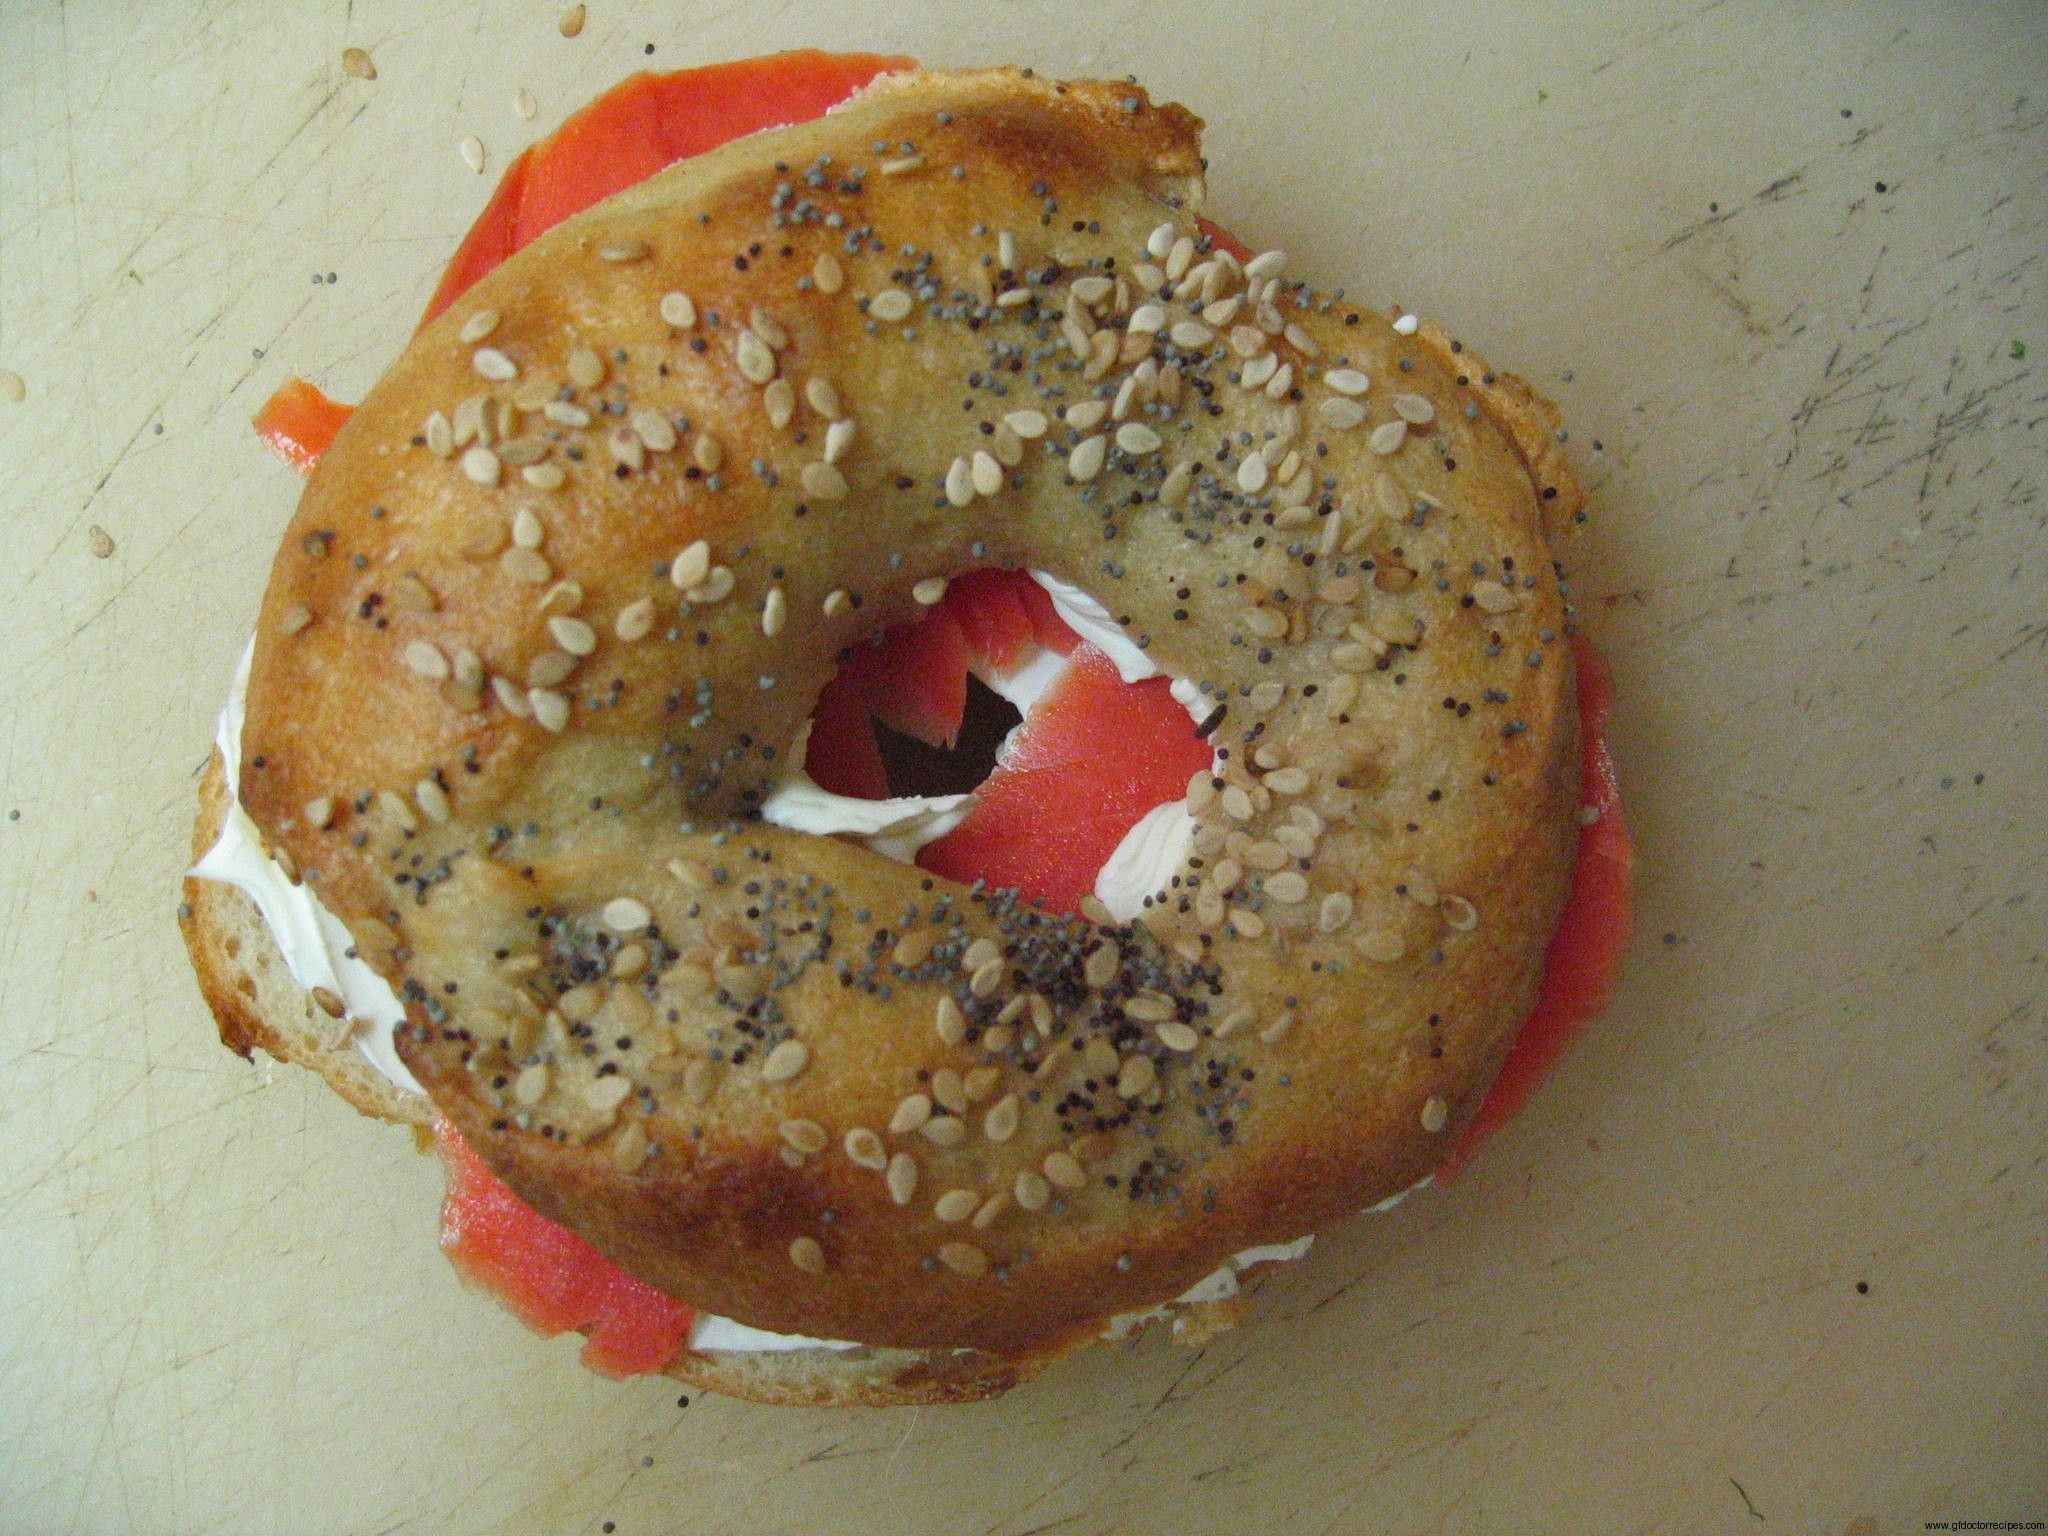 Gluten-Free Sourdough Bagels from @GFDoctor for #GFRatioRally